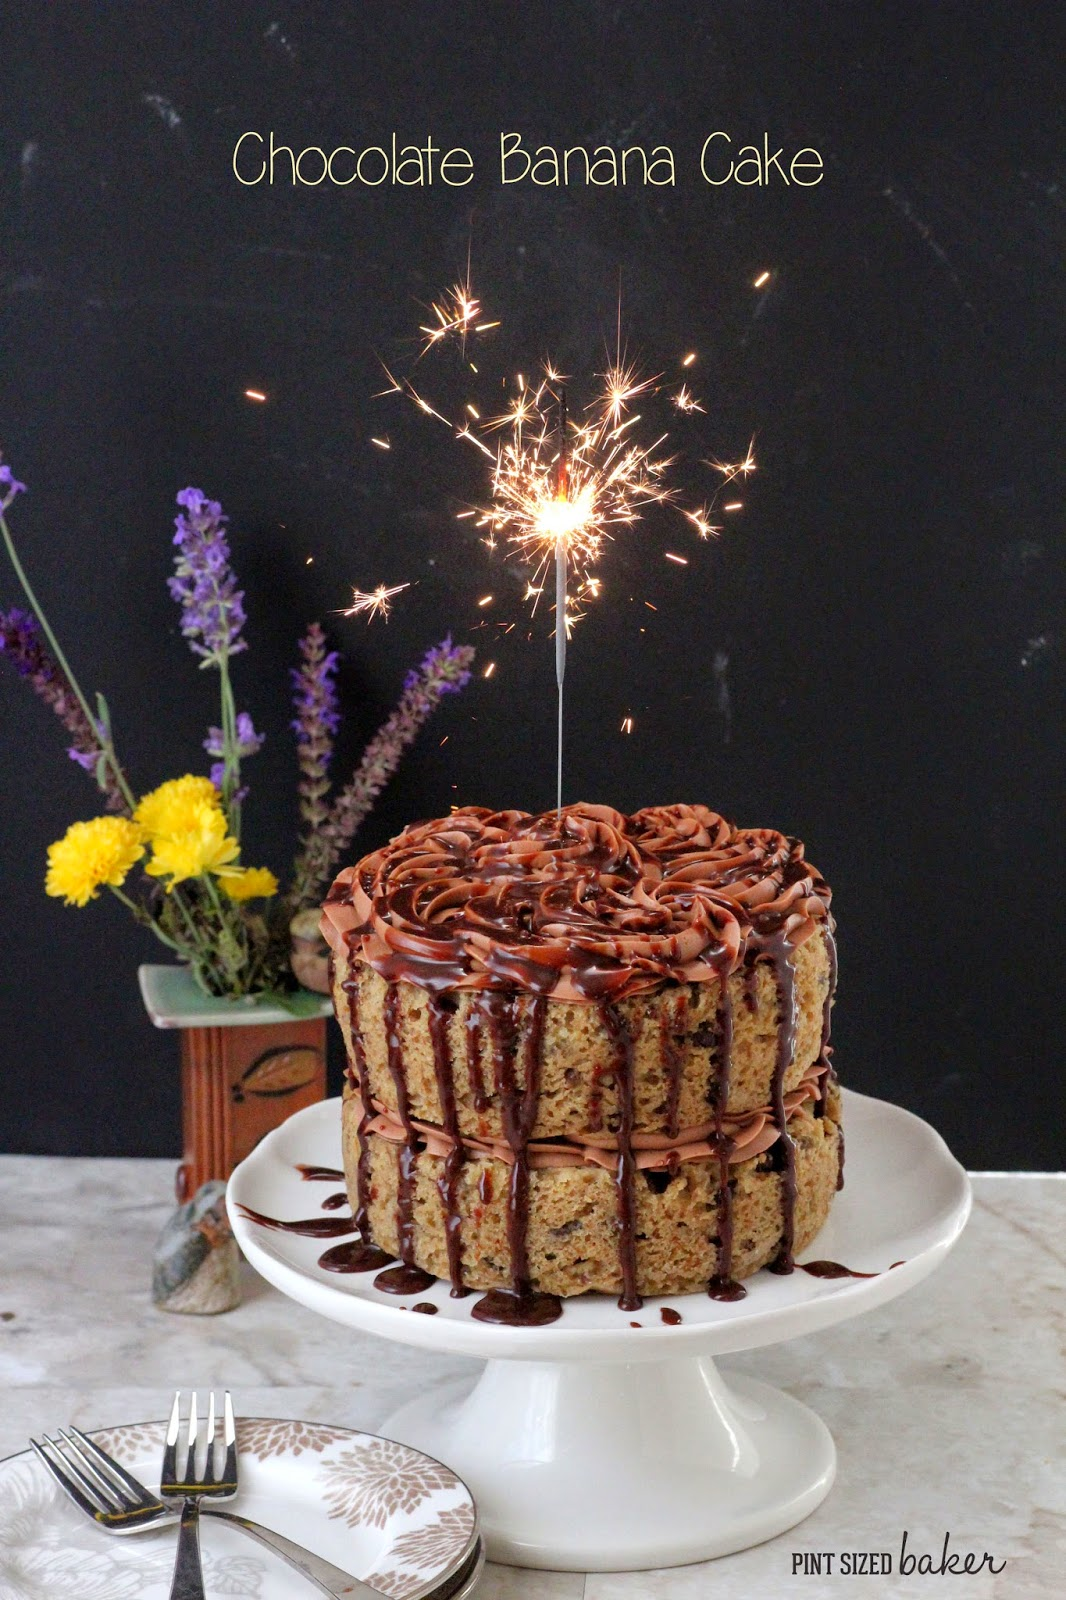 Celebrate your next birthday with a banana cake that is full of walnuts and chocolate chips and topped with an easy chocolate hazelnut frosting.